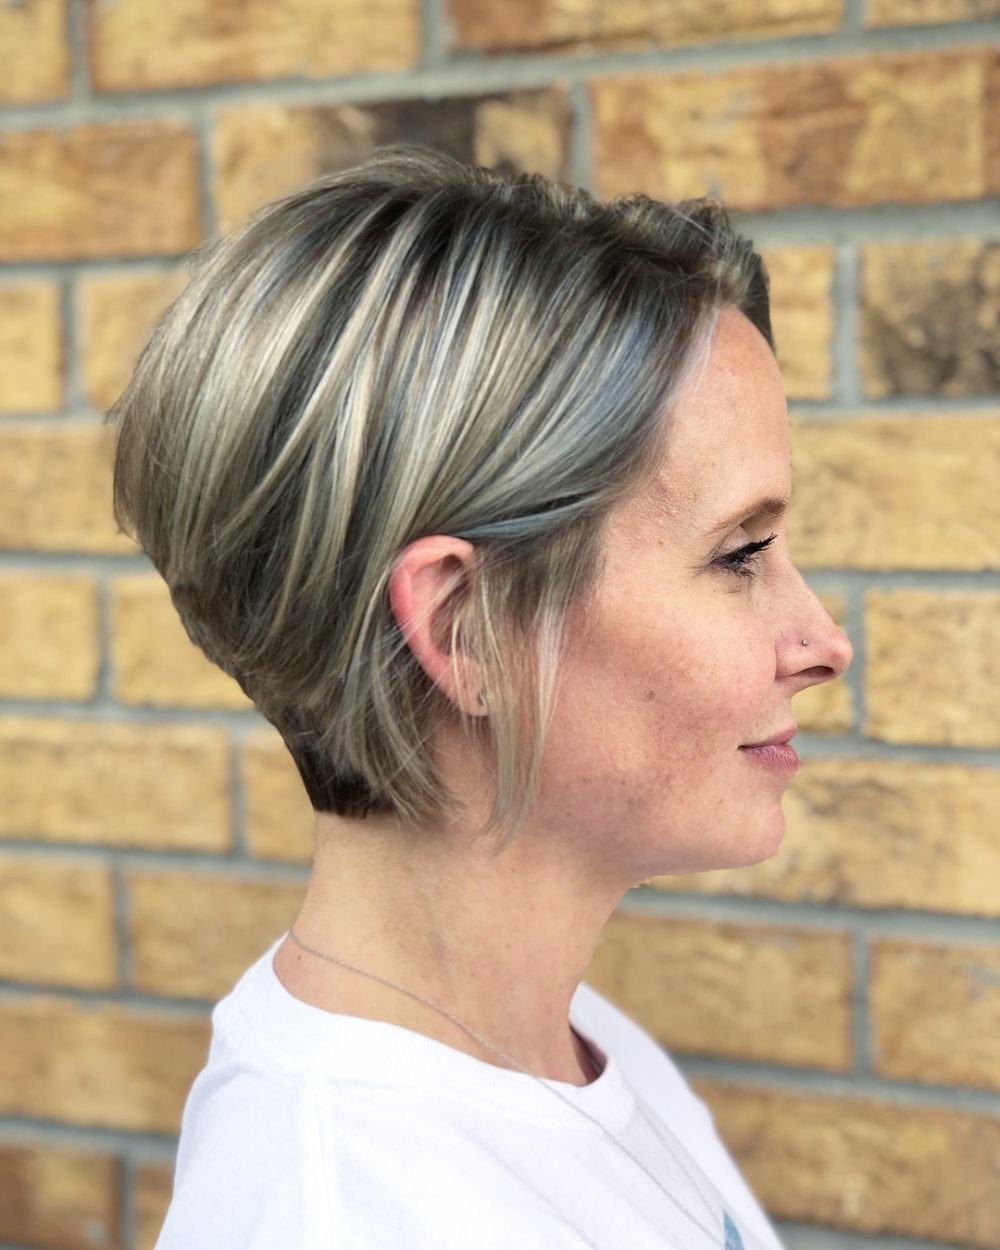 Recent Stylish Medium Haircuts For Women Over 40 Within 42 Sexiest Short Hairstyles For Women Over 40 In 2019 (Gallery 5 of 20)